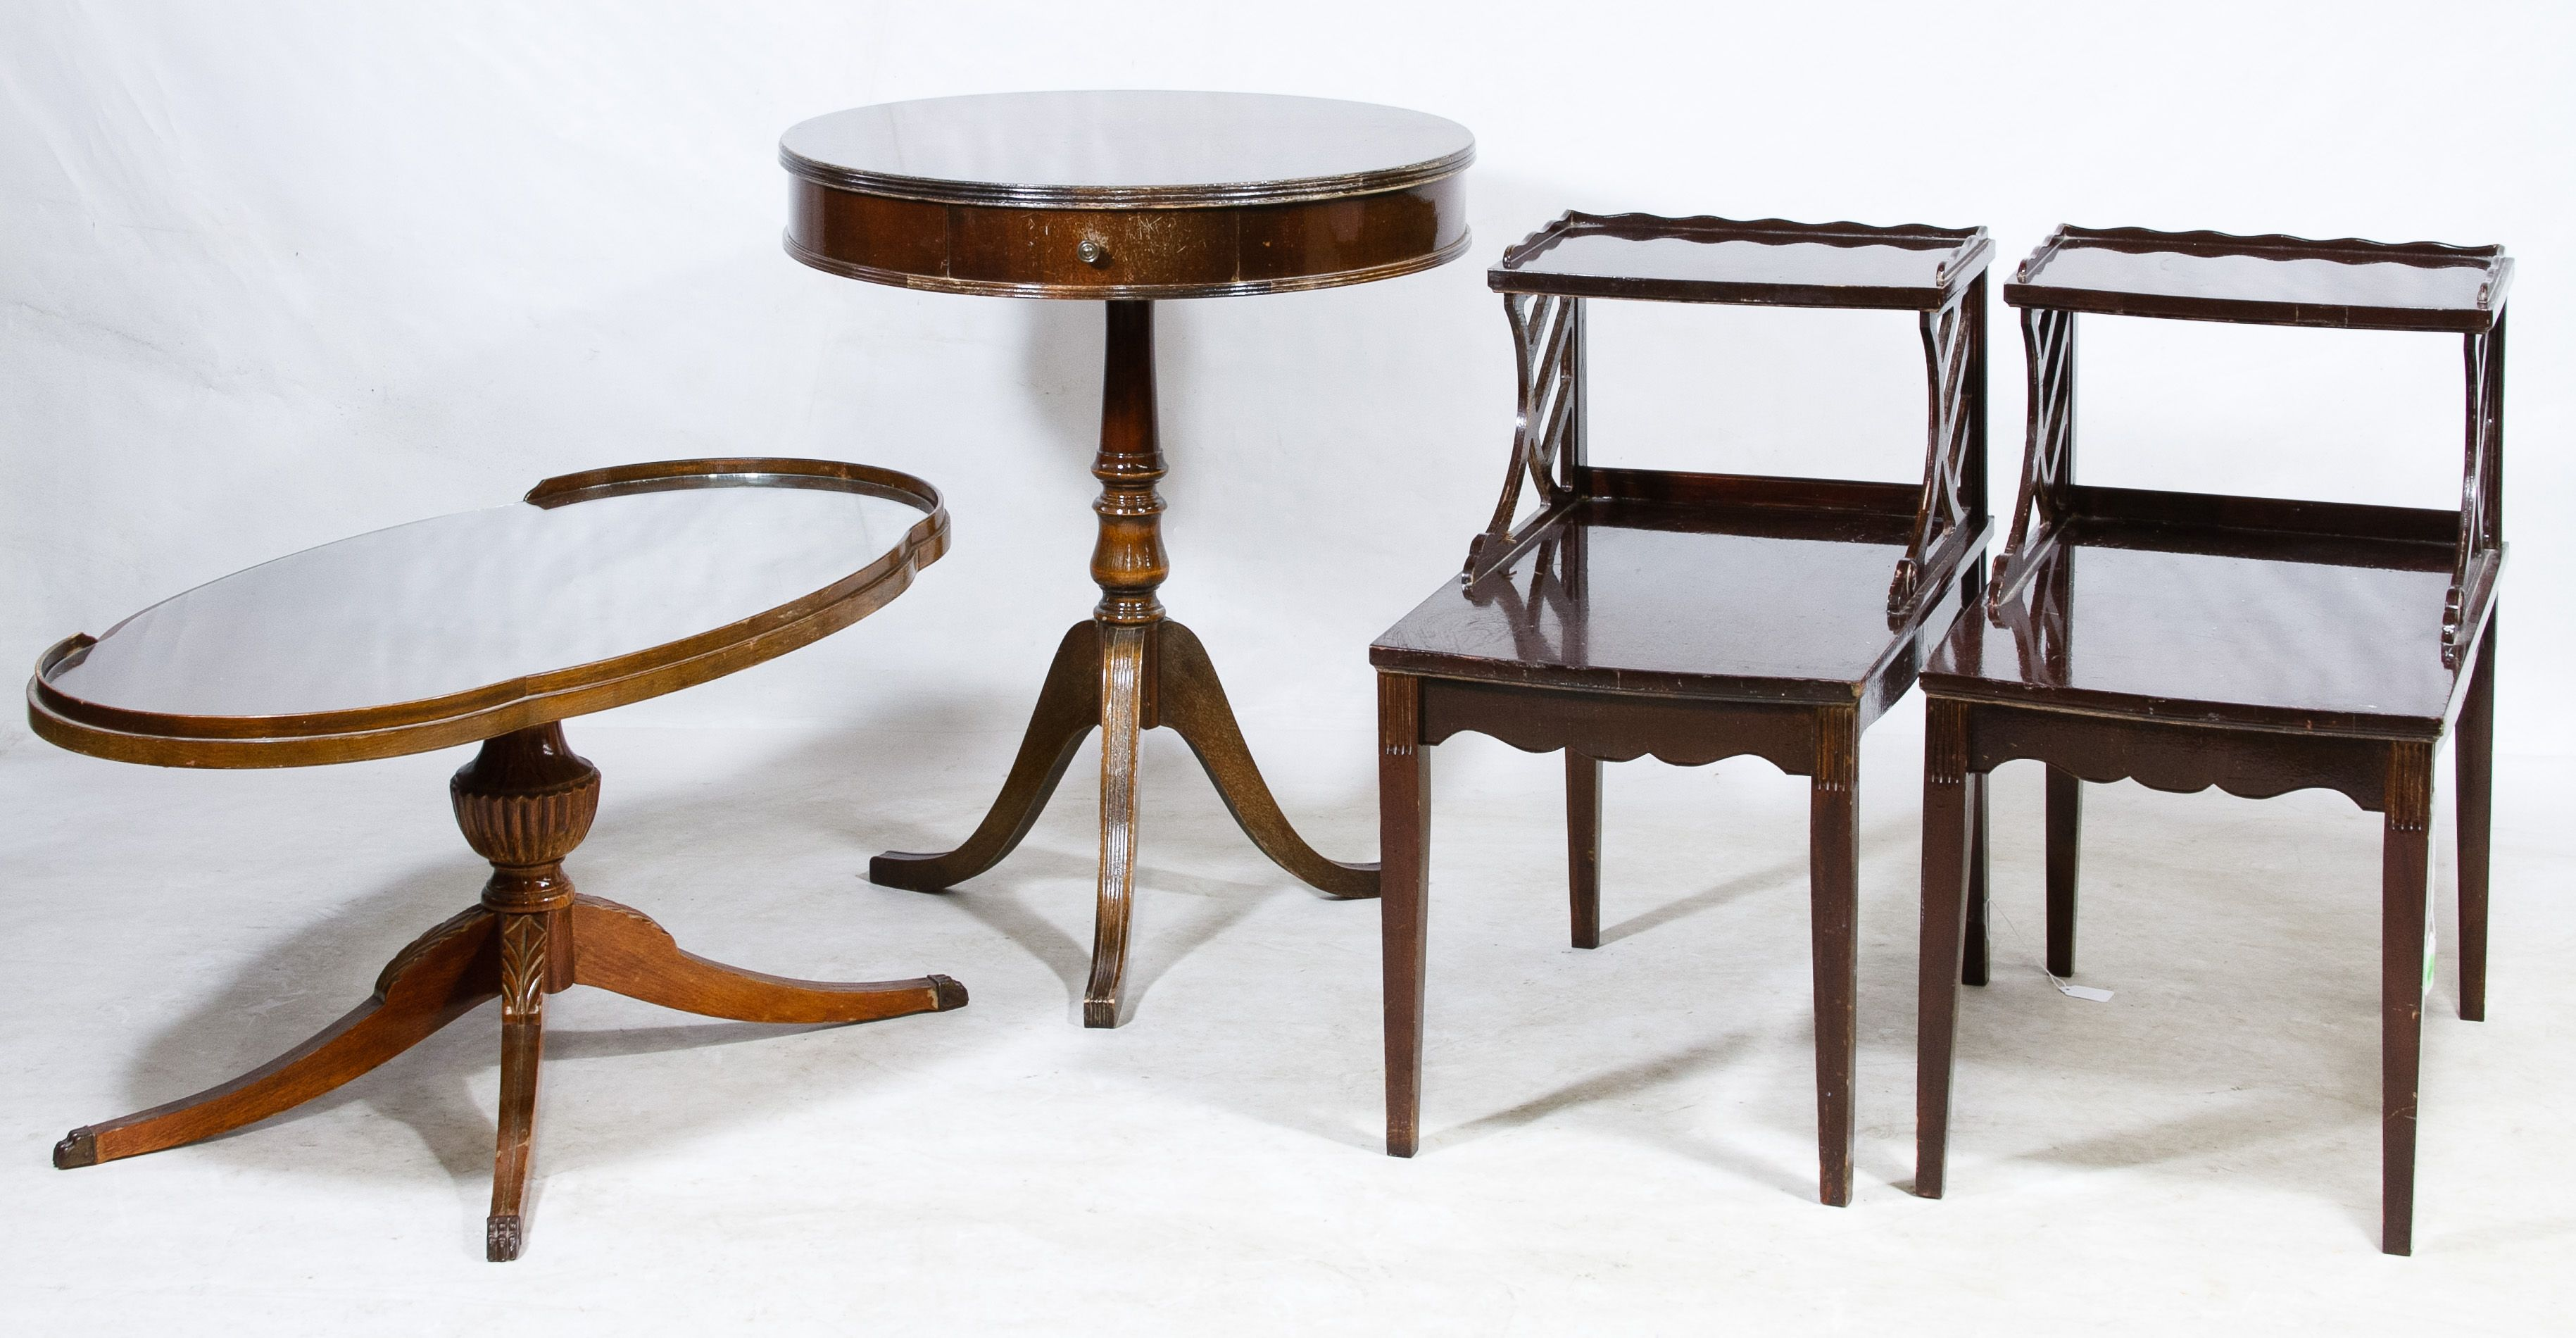 Lot 410 Mahogany Small Table Assortment Including a Mersman 7172